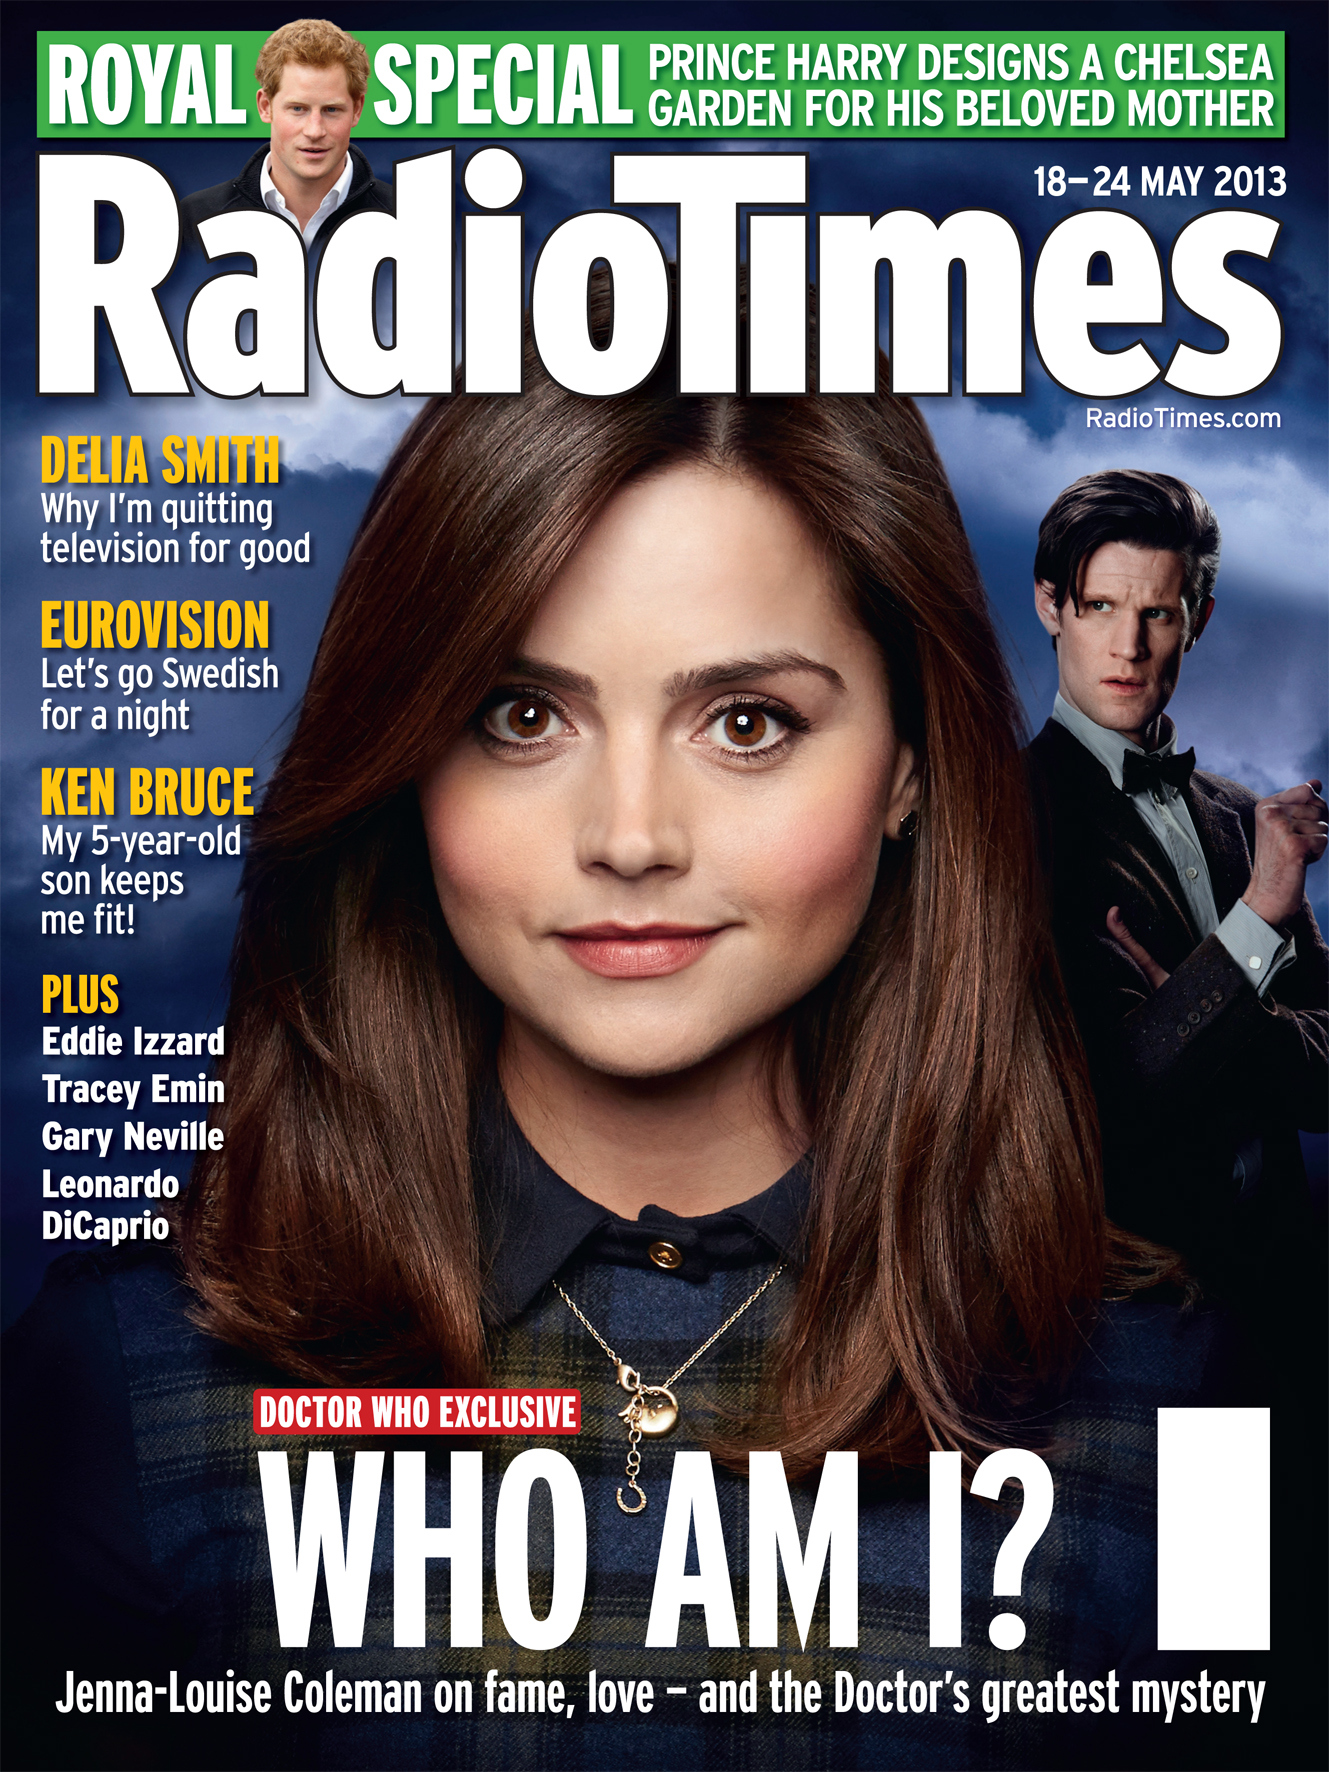 Radio Times (18 - 14 May 2013) (Credit: Radio Times)